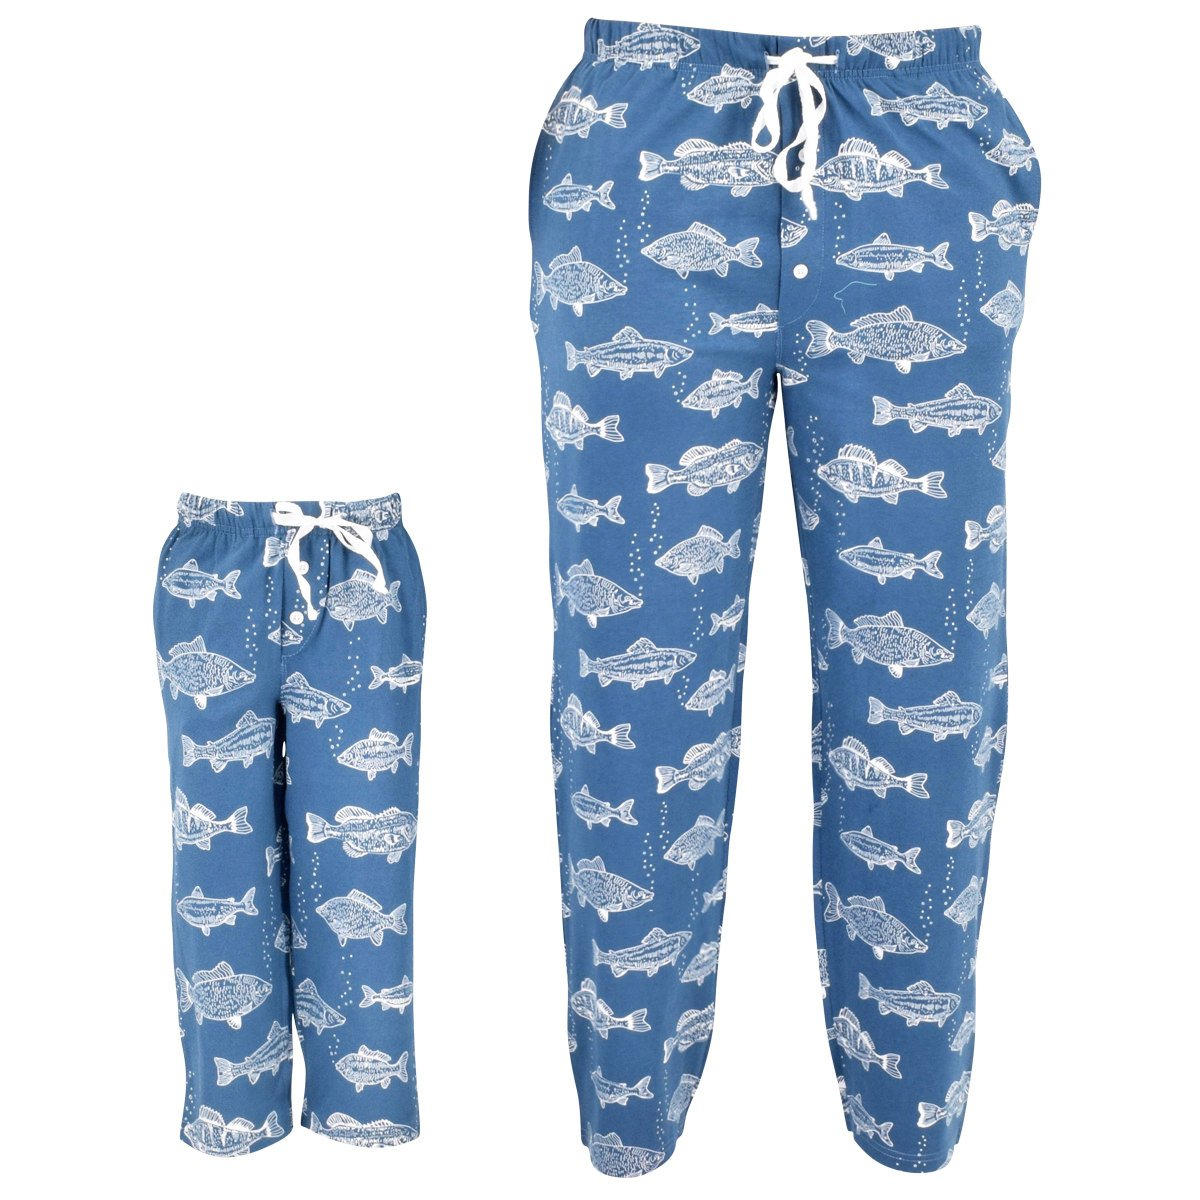 Unique Baby UB Adult Fisherman Print Matching Family Father's Day Pajama Pants (M)